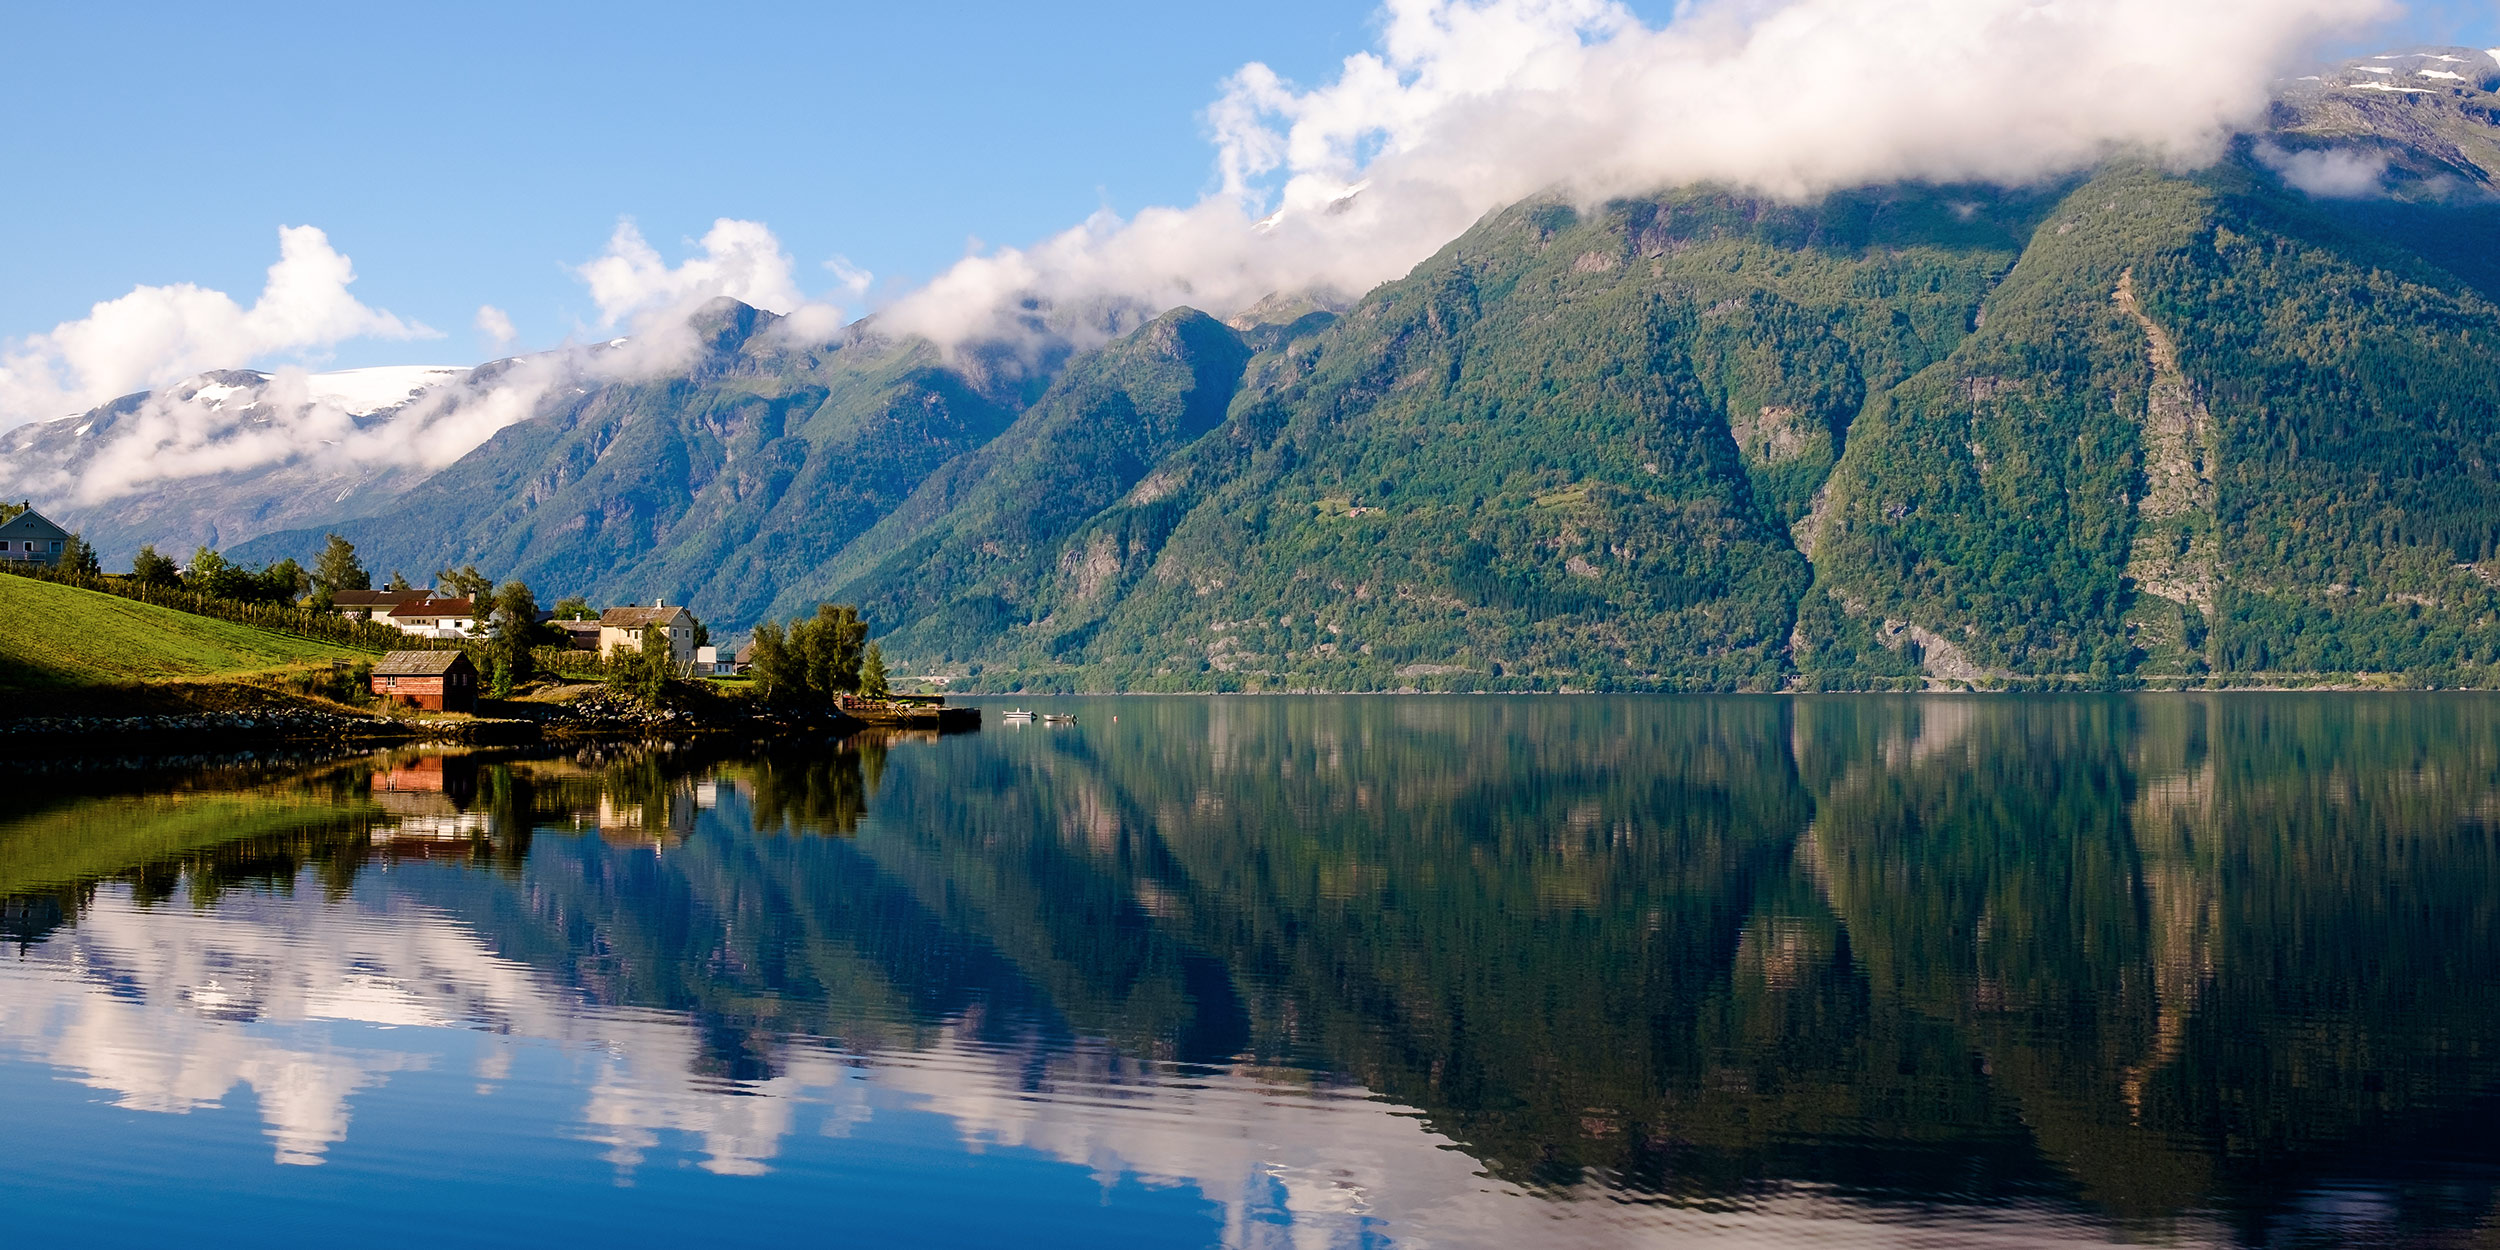 day-3_hardanger-fjord_idyllic-settlements-by-the-fjord_shutterstock